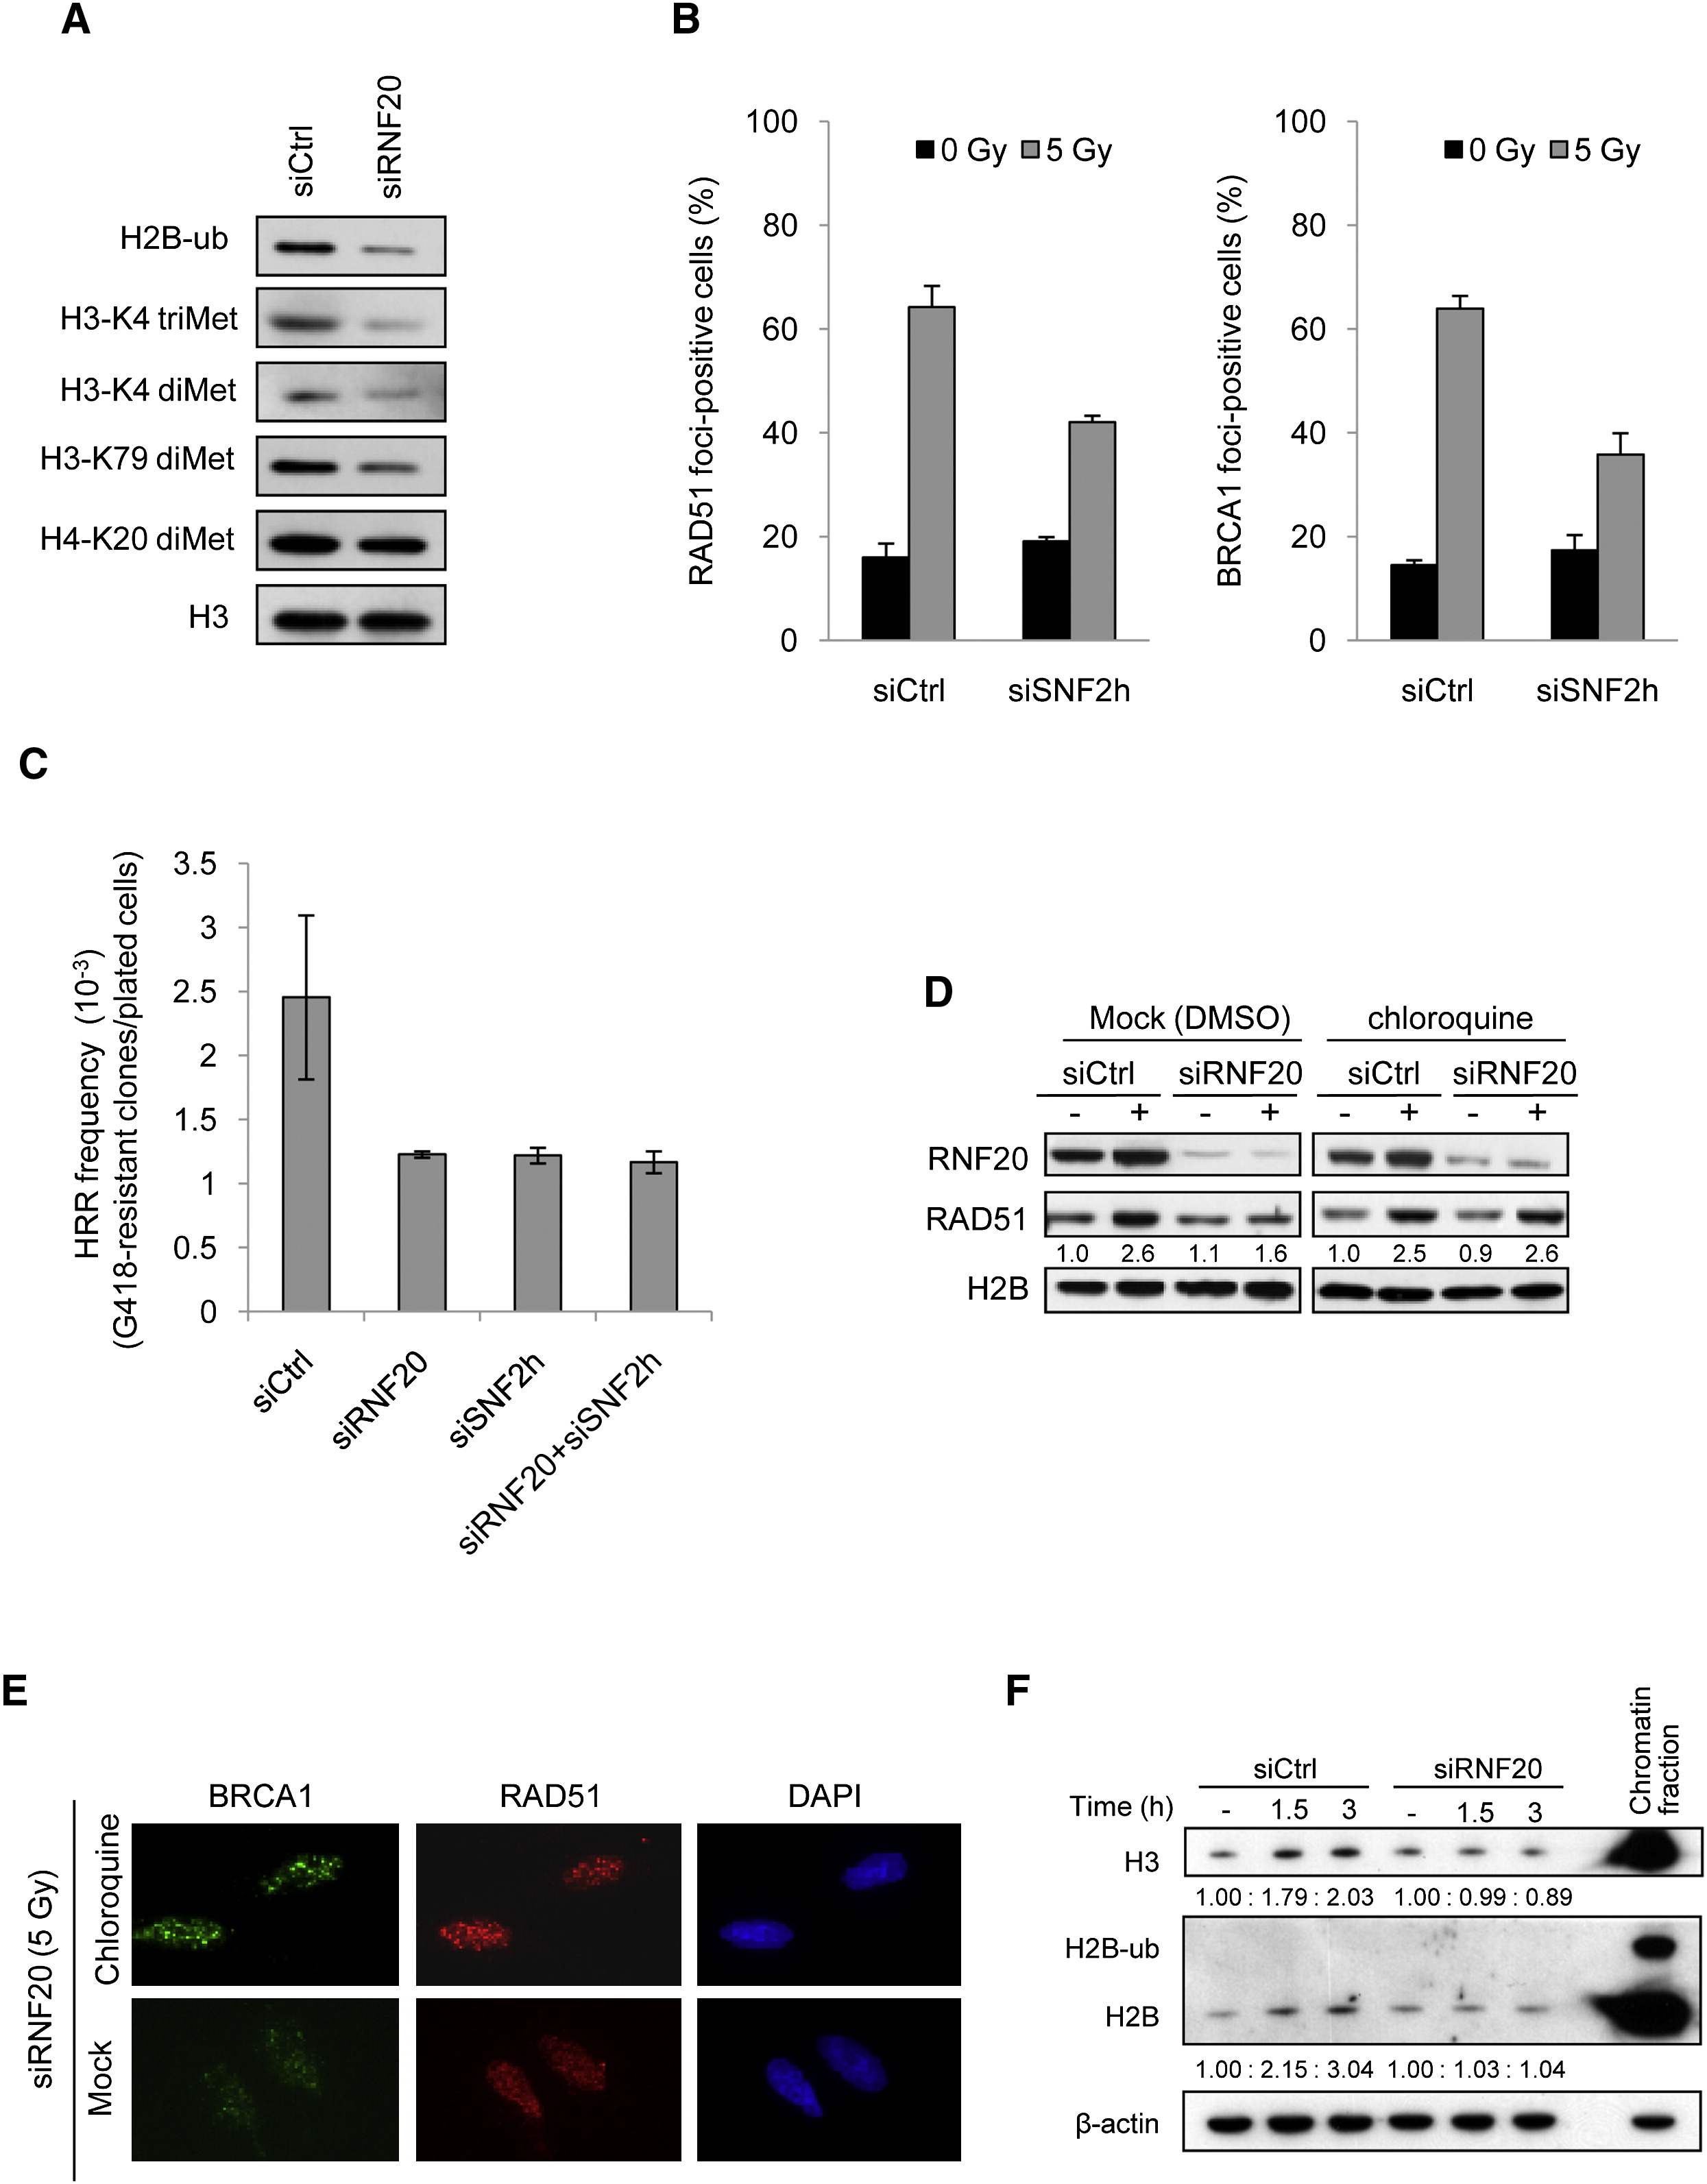 Regulation Of Homologous Recombination By Rnf20 Dependent H2b Ubiquitination Molecular Cell